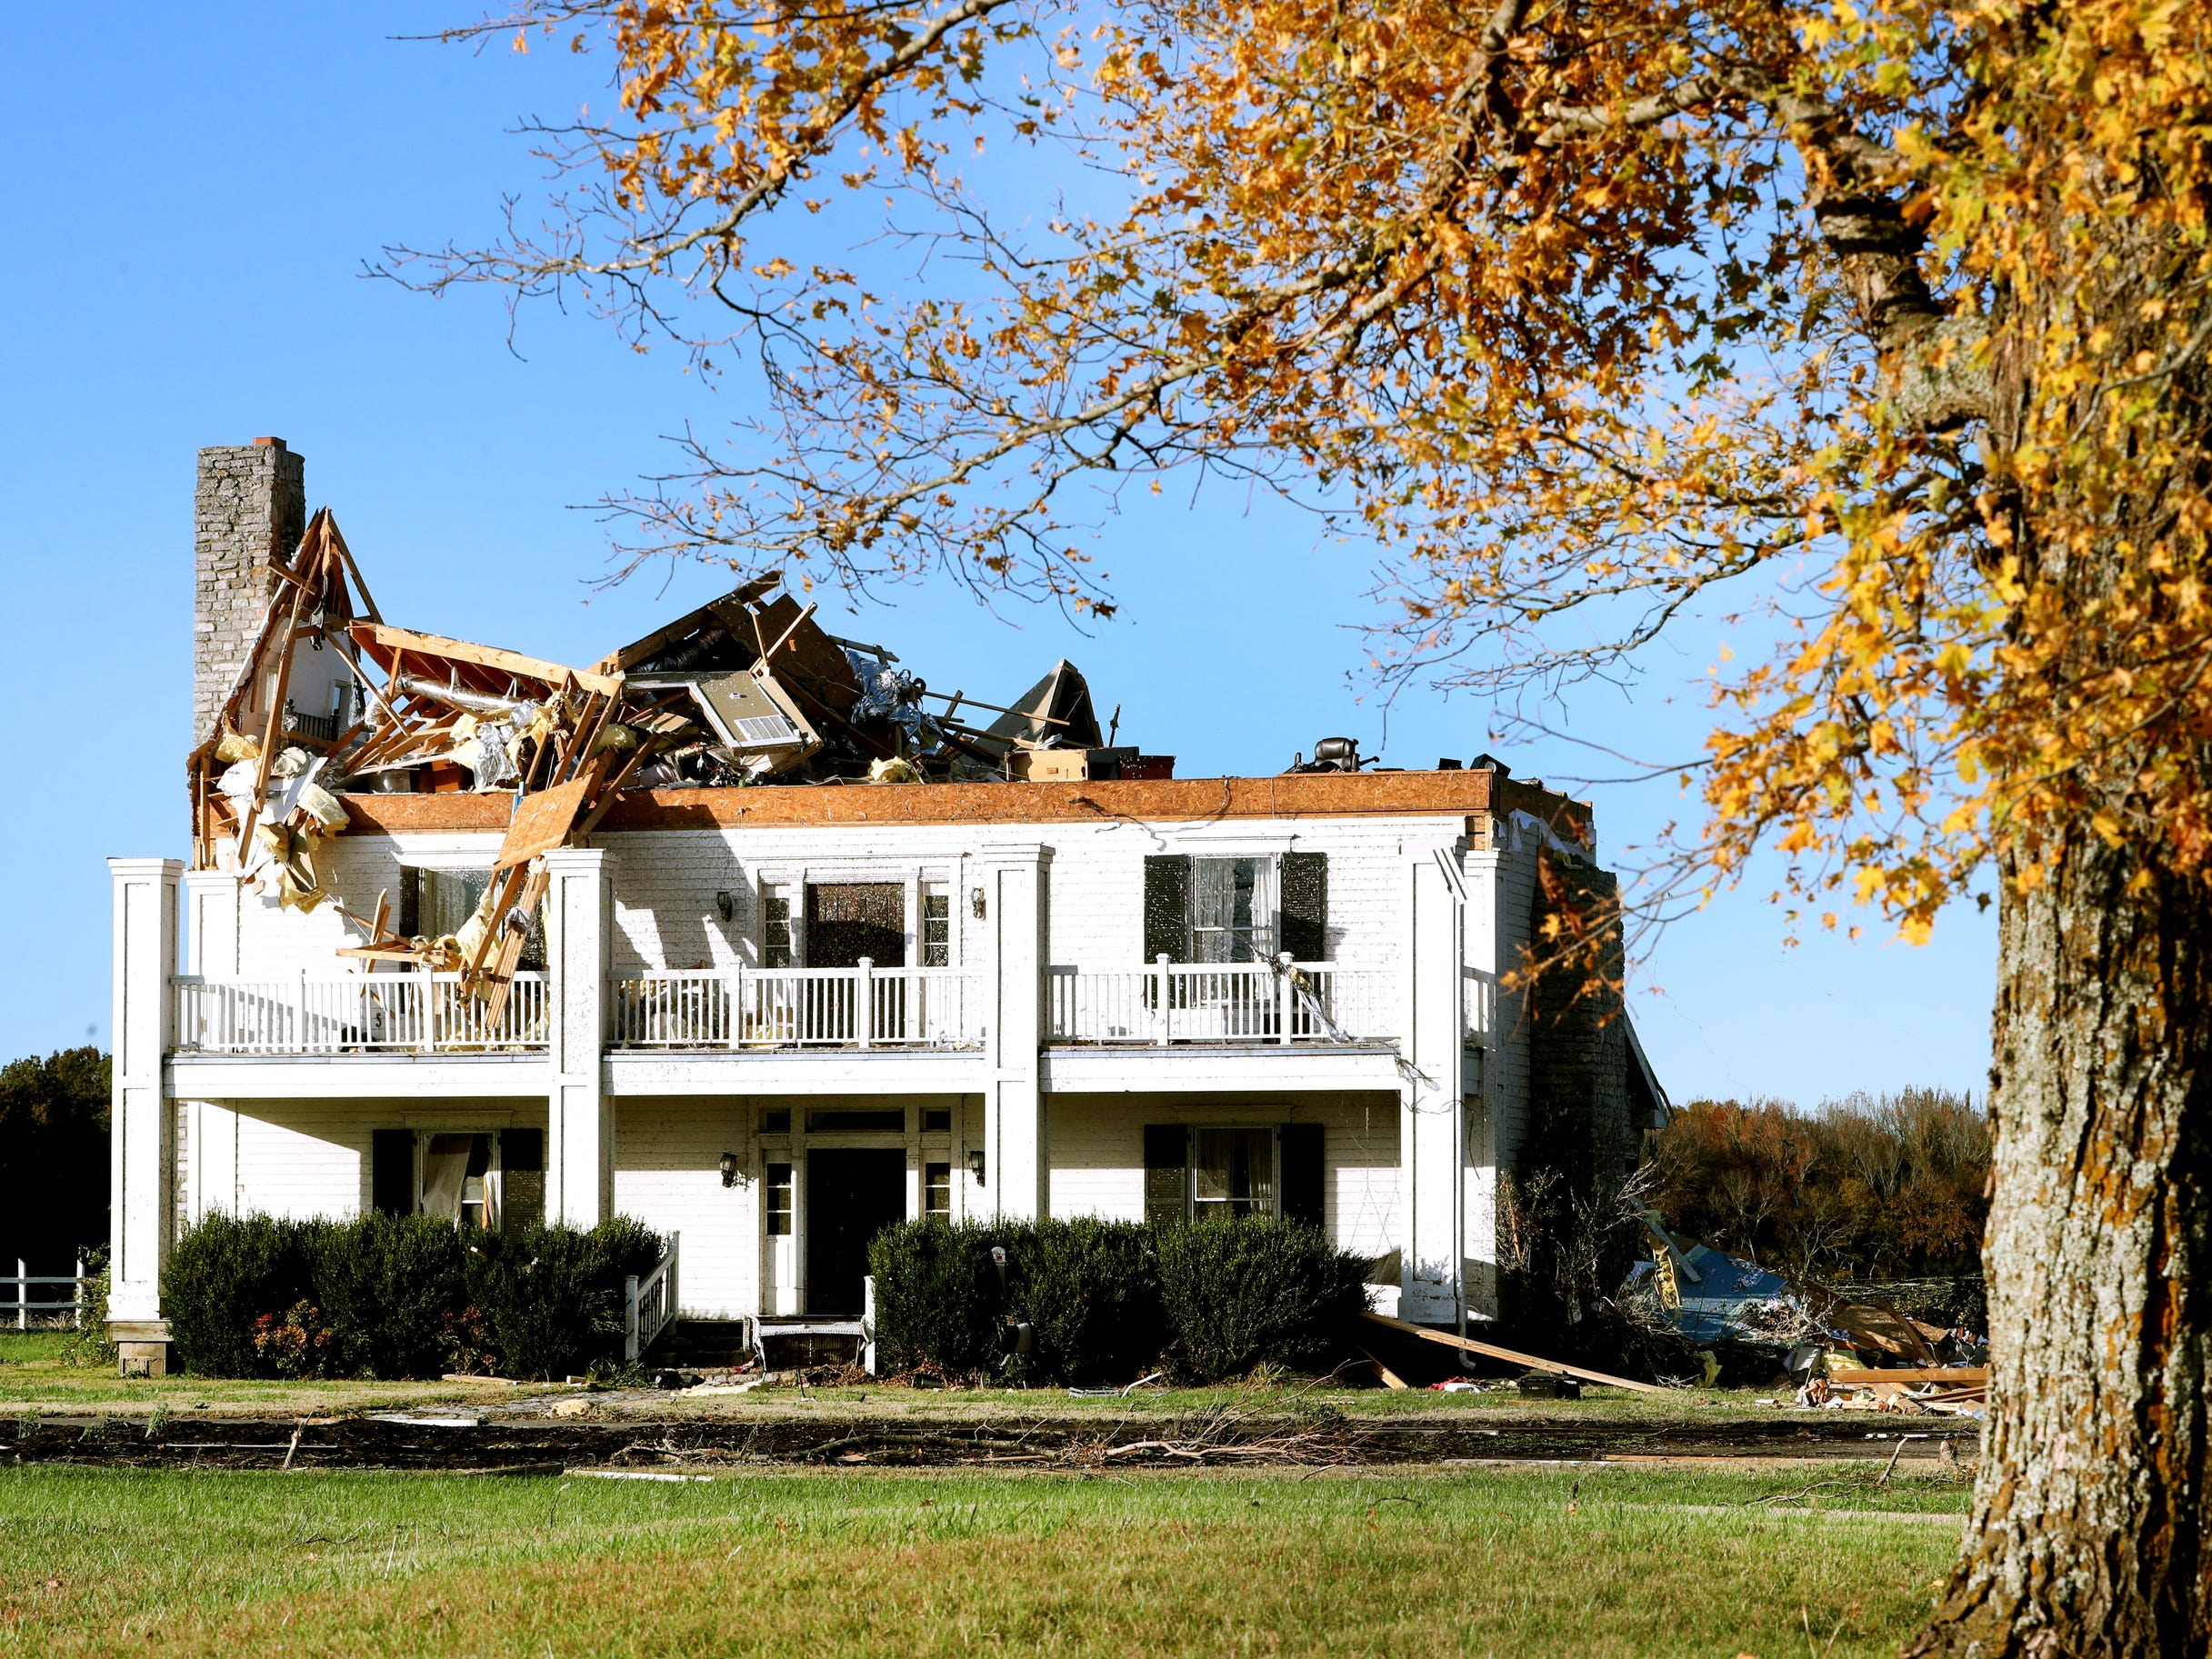 The top floor of the home of John and Tish Erdmann on Rock Springs Midland Road was removed after a tornado blew through the area overnight in Christiana, Tenn., on Tuesday, Nov. 6, 2018.